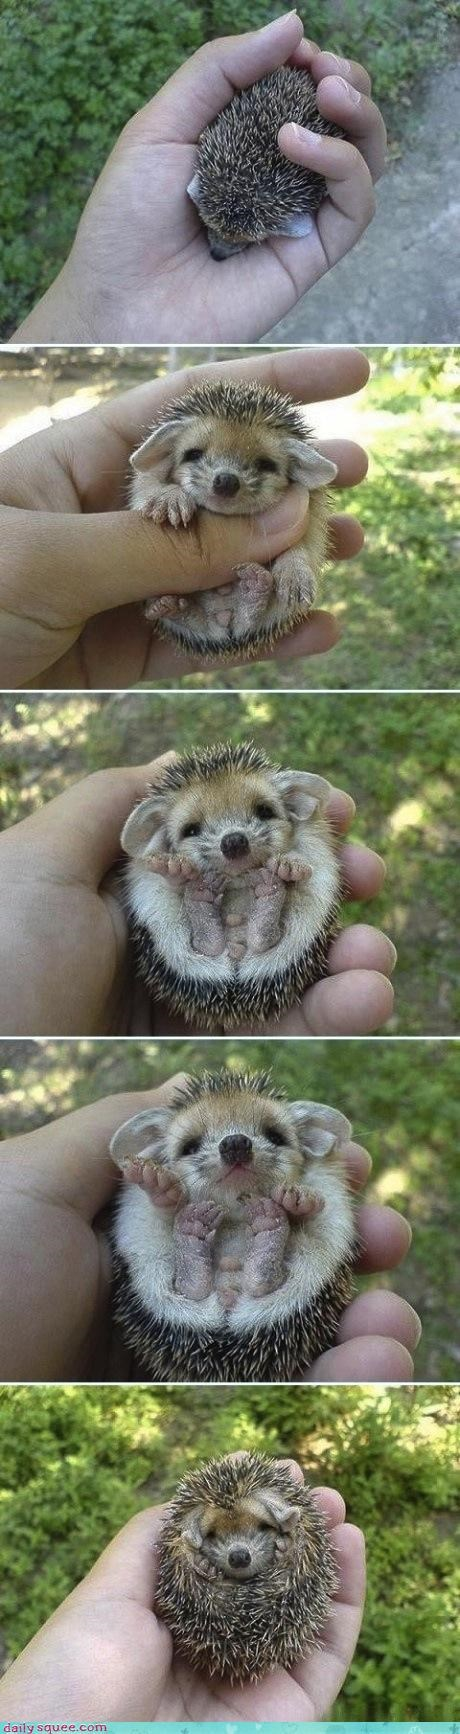 curling up cute frame-by-frame hedgehog slow motion sonic sonic the hedgehog spin dash technology - 4500474880